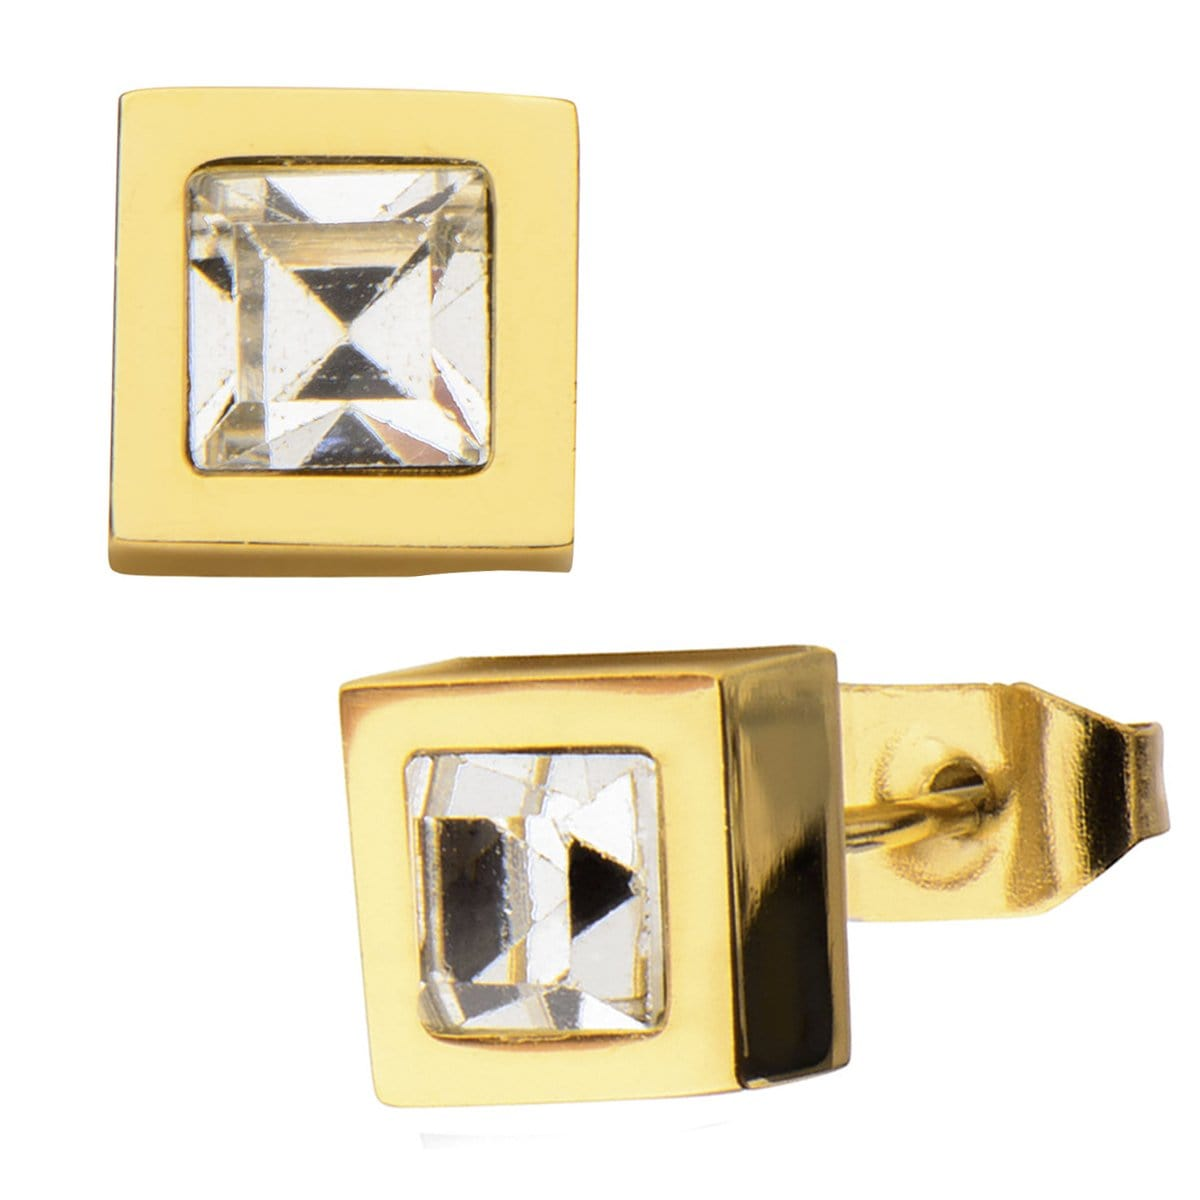 Gold Stainless Steel Princess Cut Crystal Square Studs Earrings